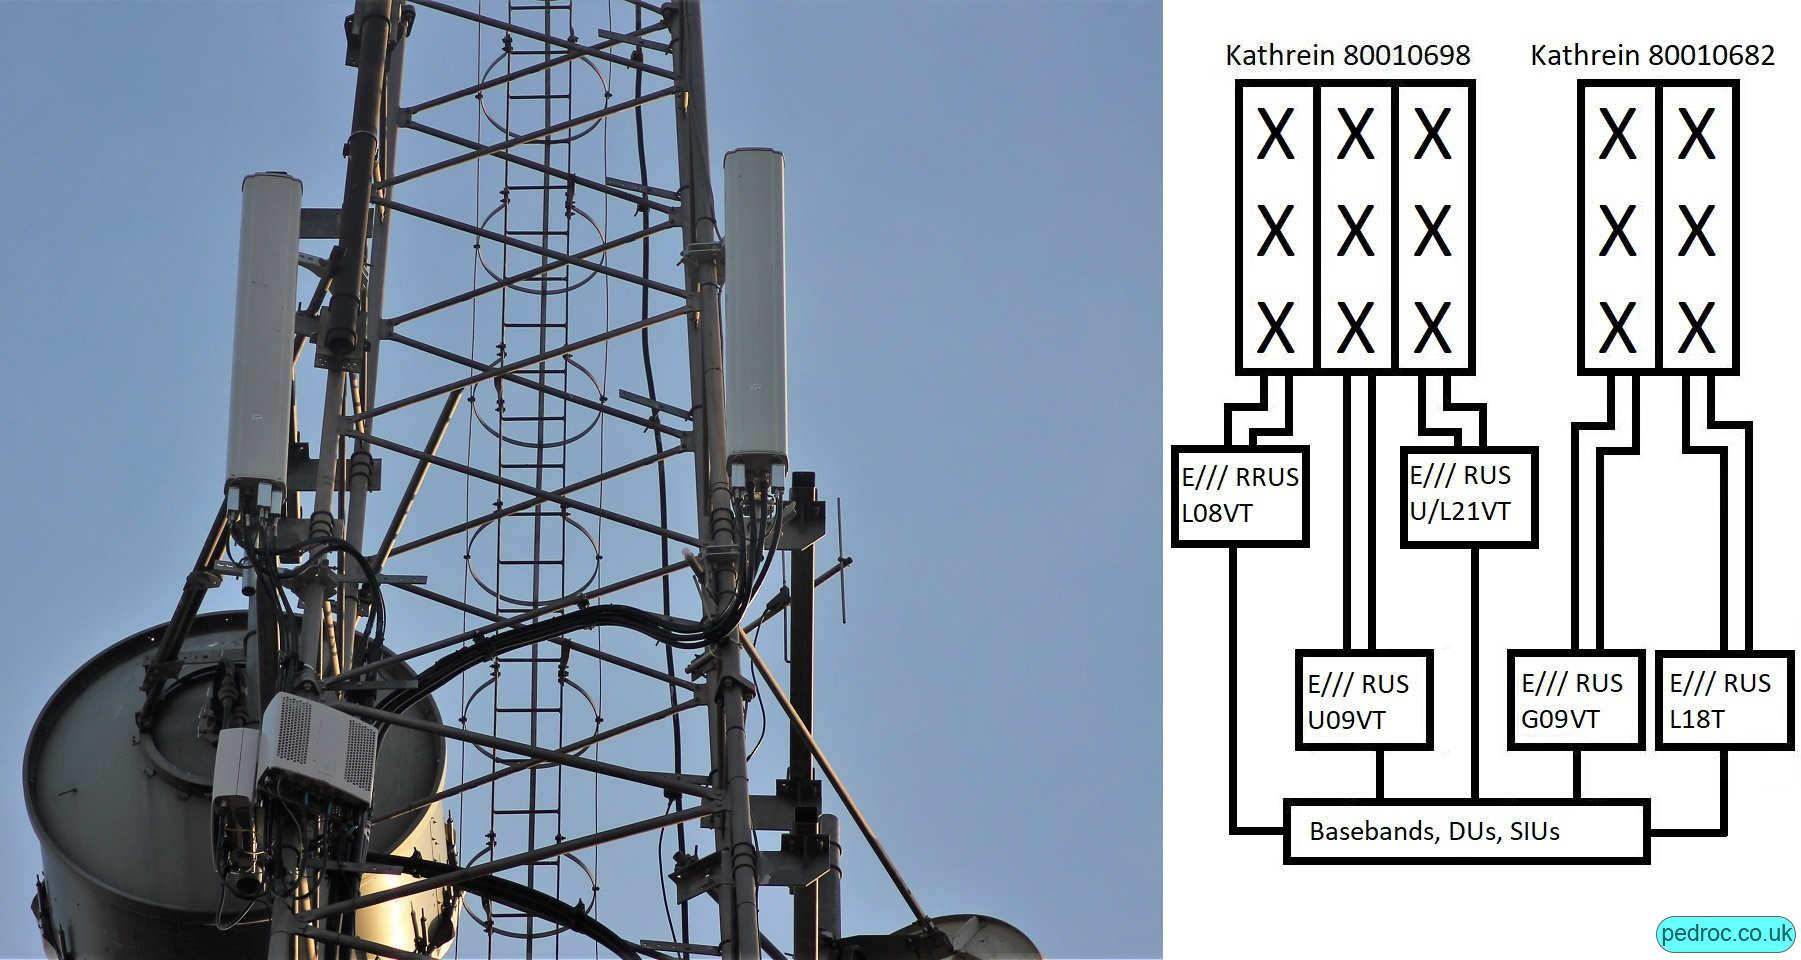 High Capacity Configuration using triple band 80010698 antennas and a dual band 80010682 or similar. 80010698 has U09, U/L21 off RRUS12, L08 off RRUS11 and 80010682 with G09 and L18